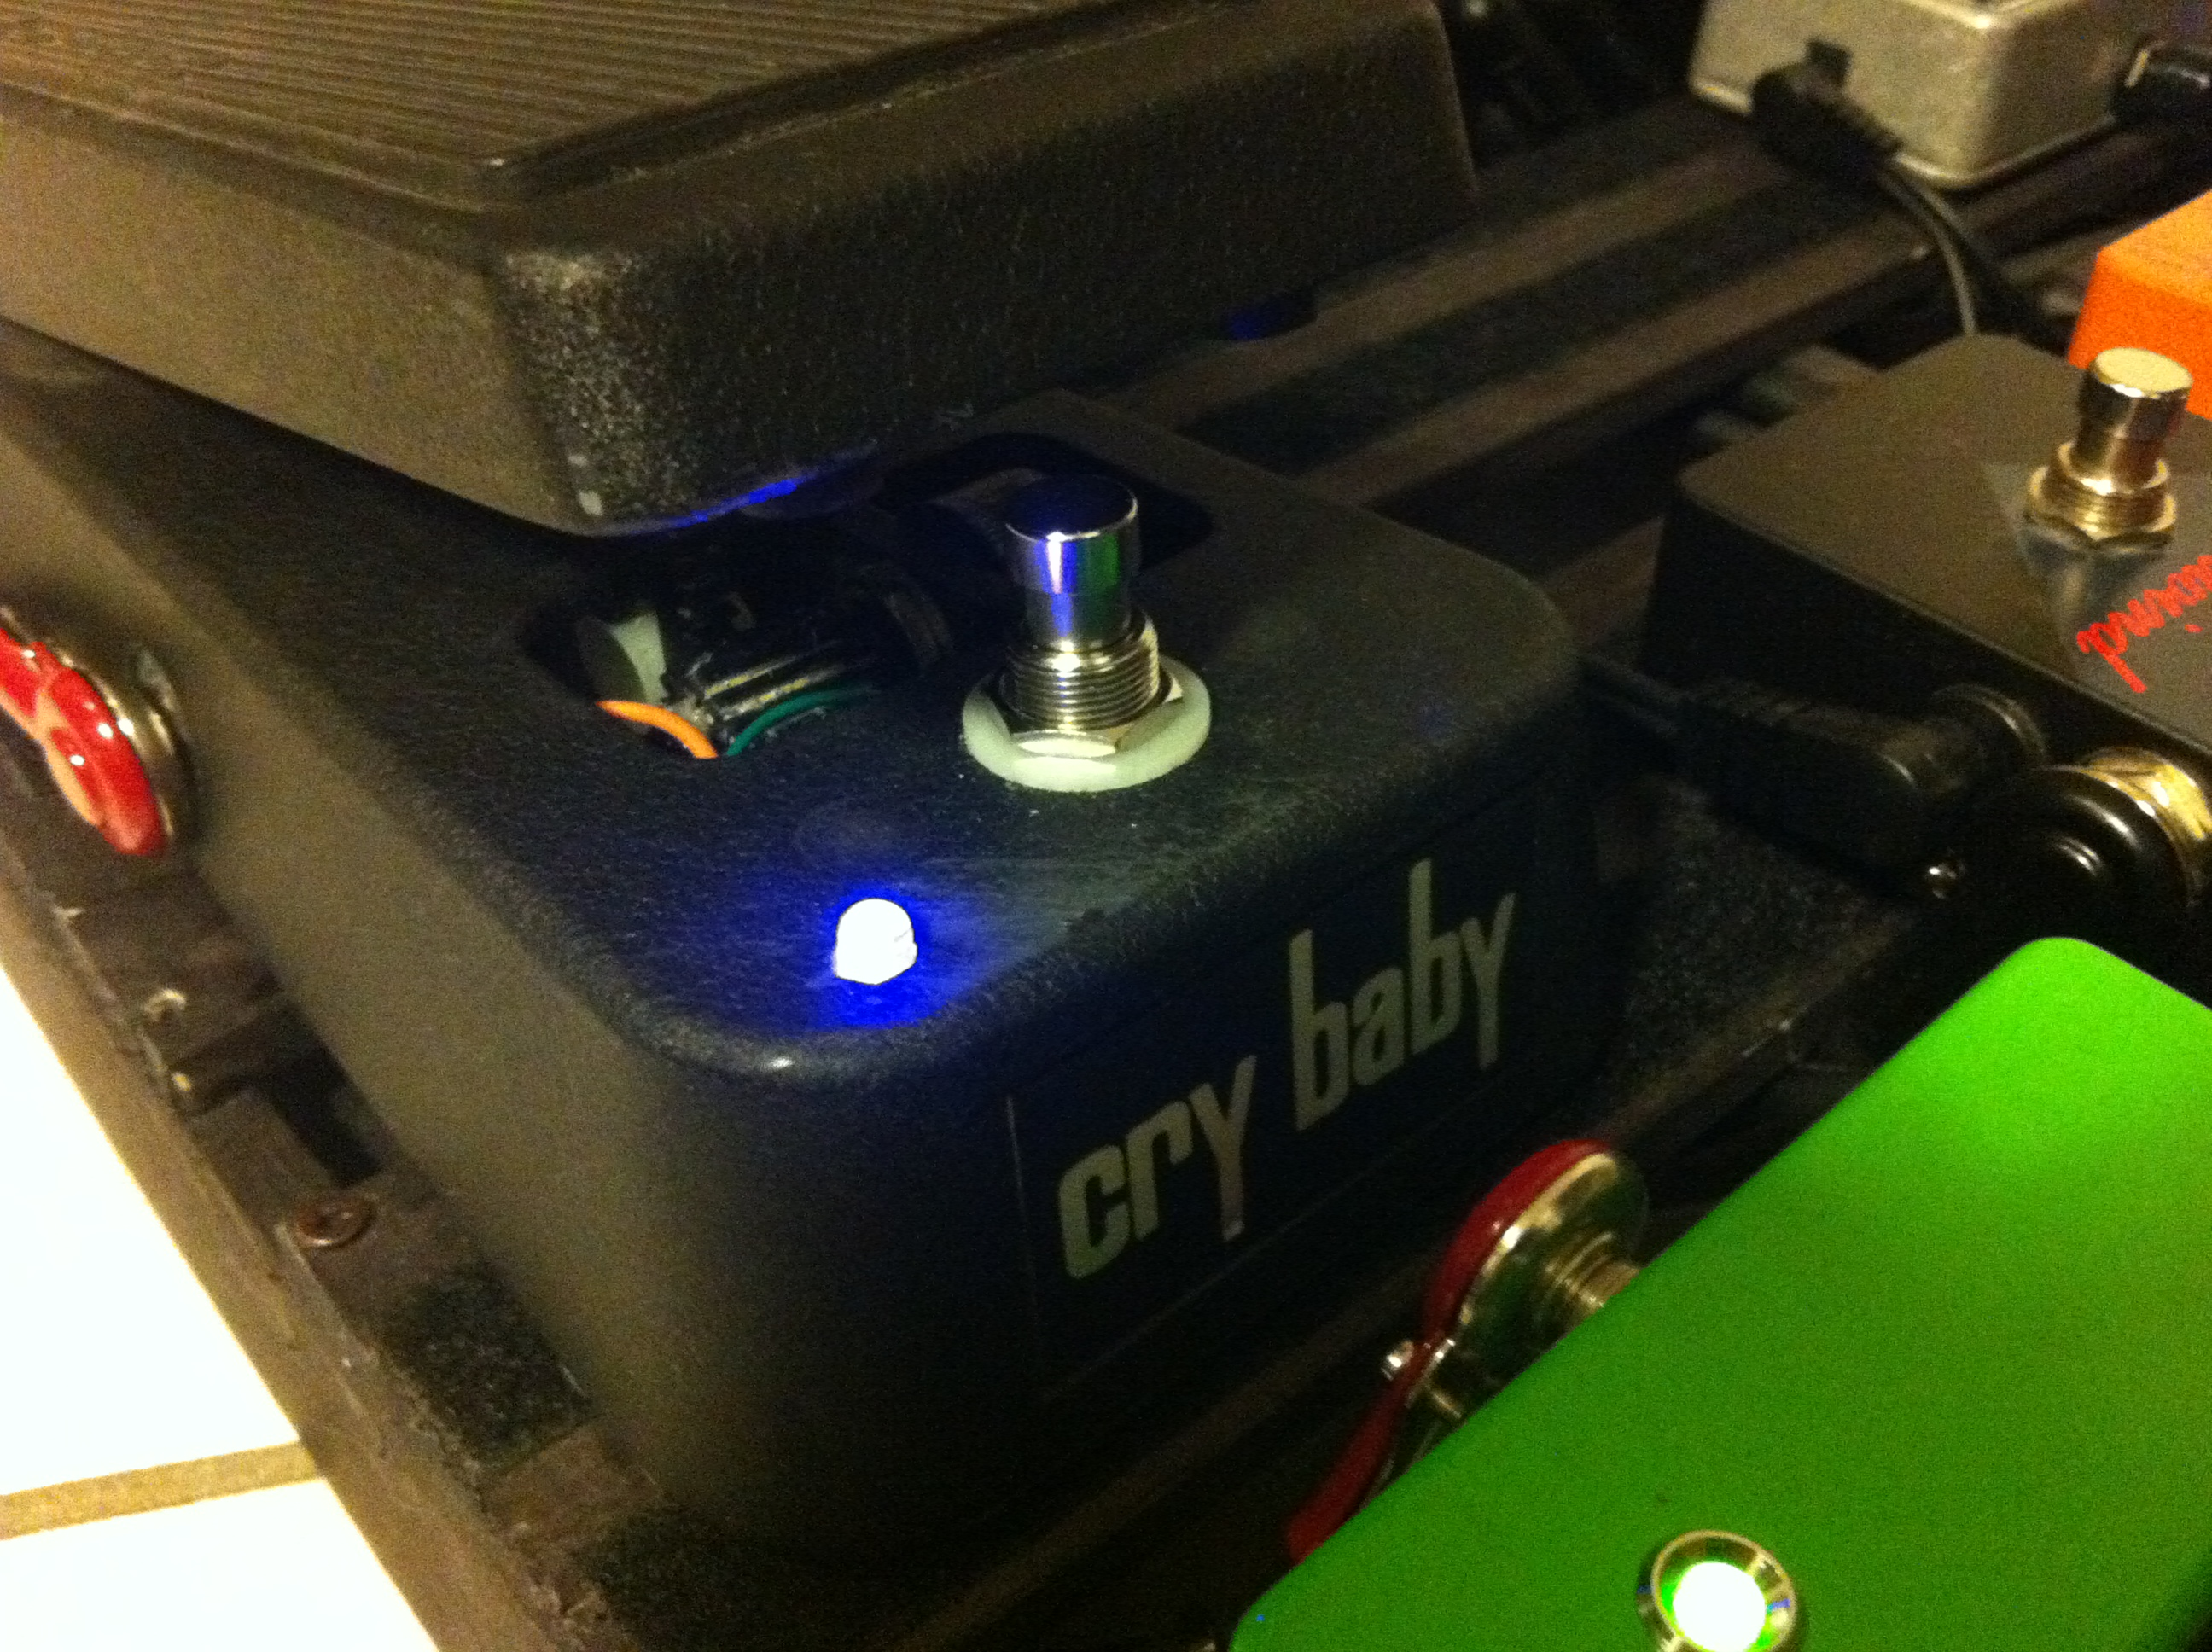 Convert Crybaby wah pedal to true bypass – ♫ Daniele Turani ♪